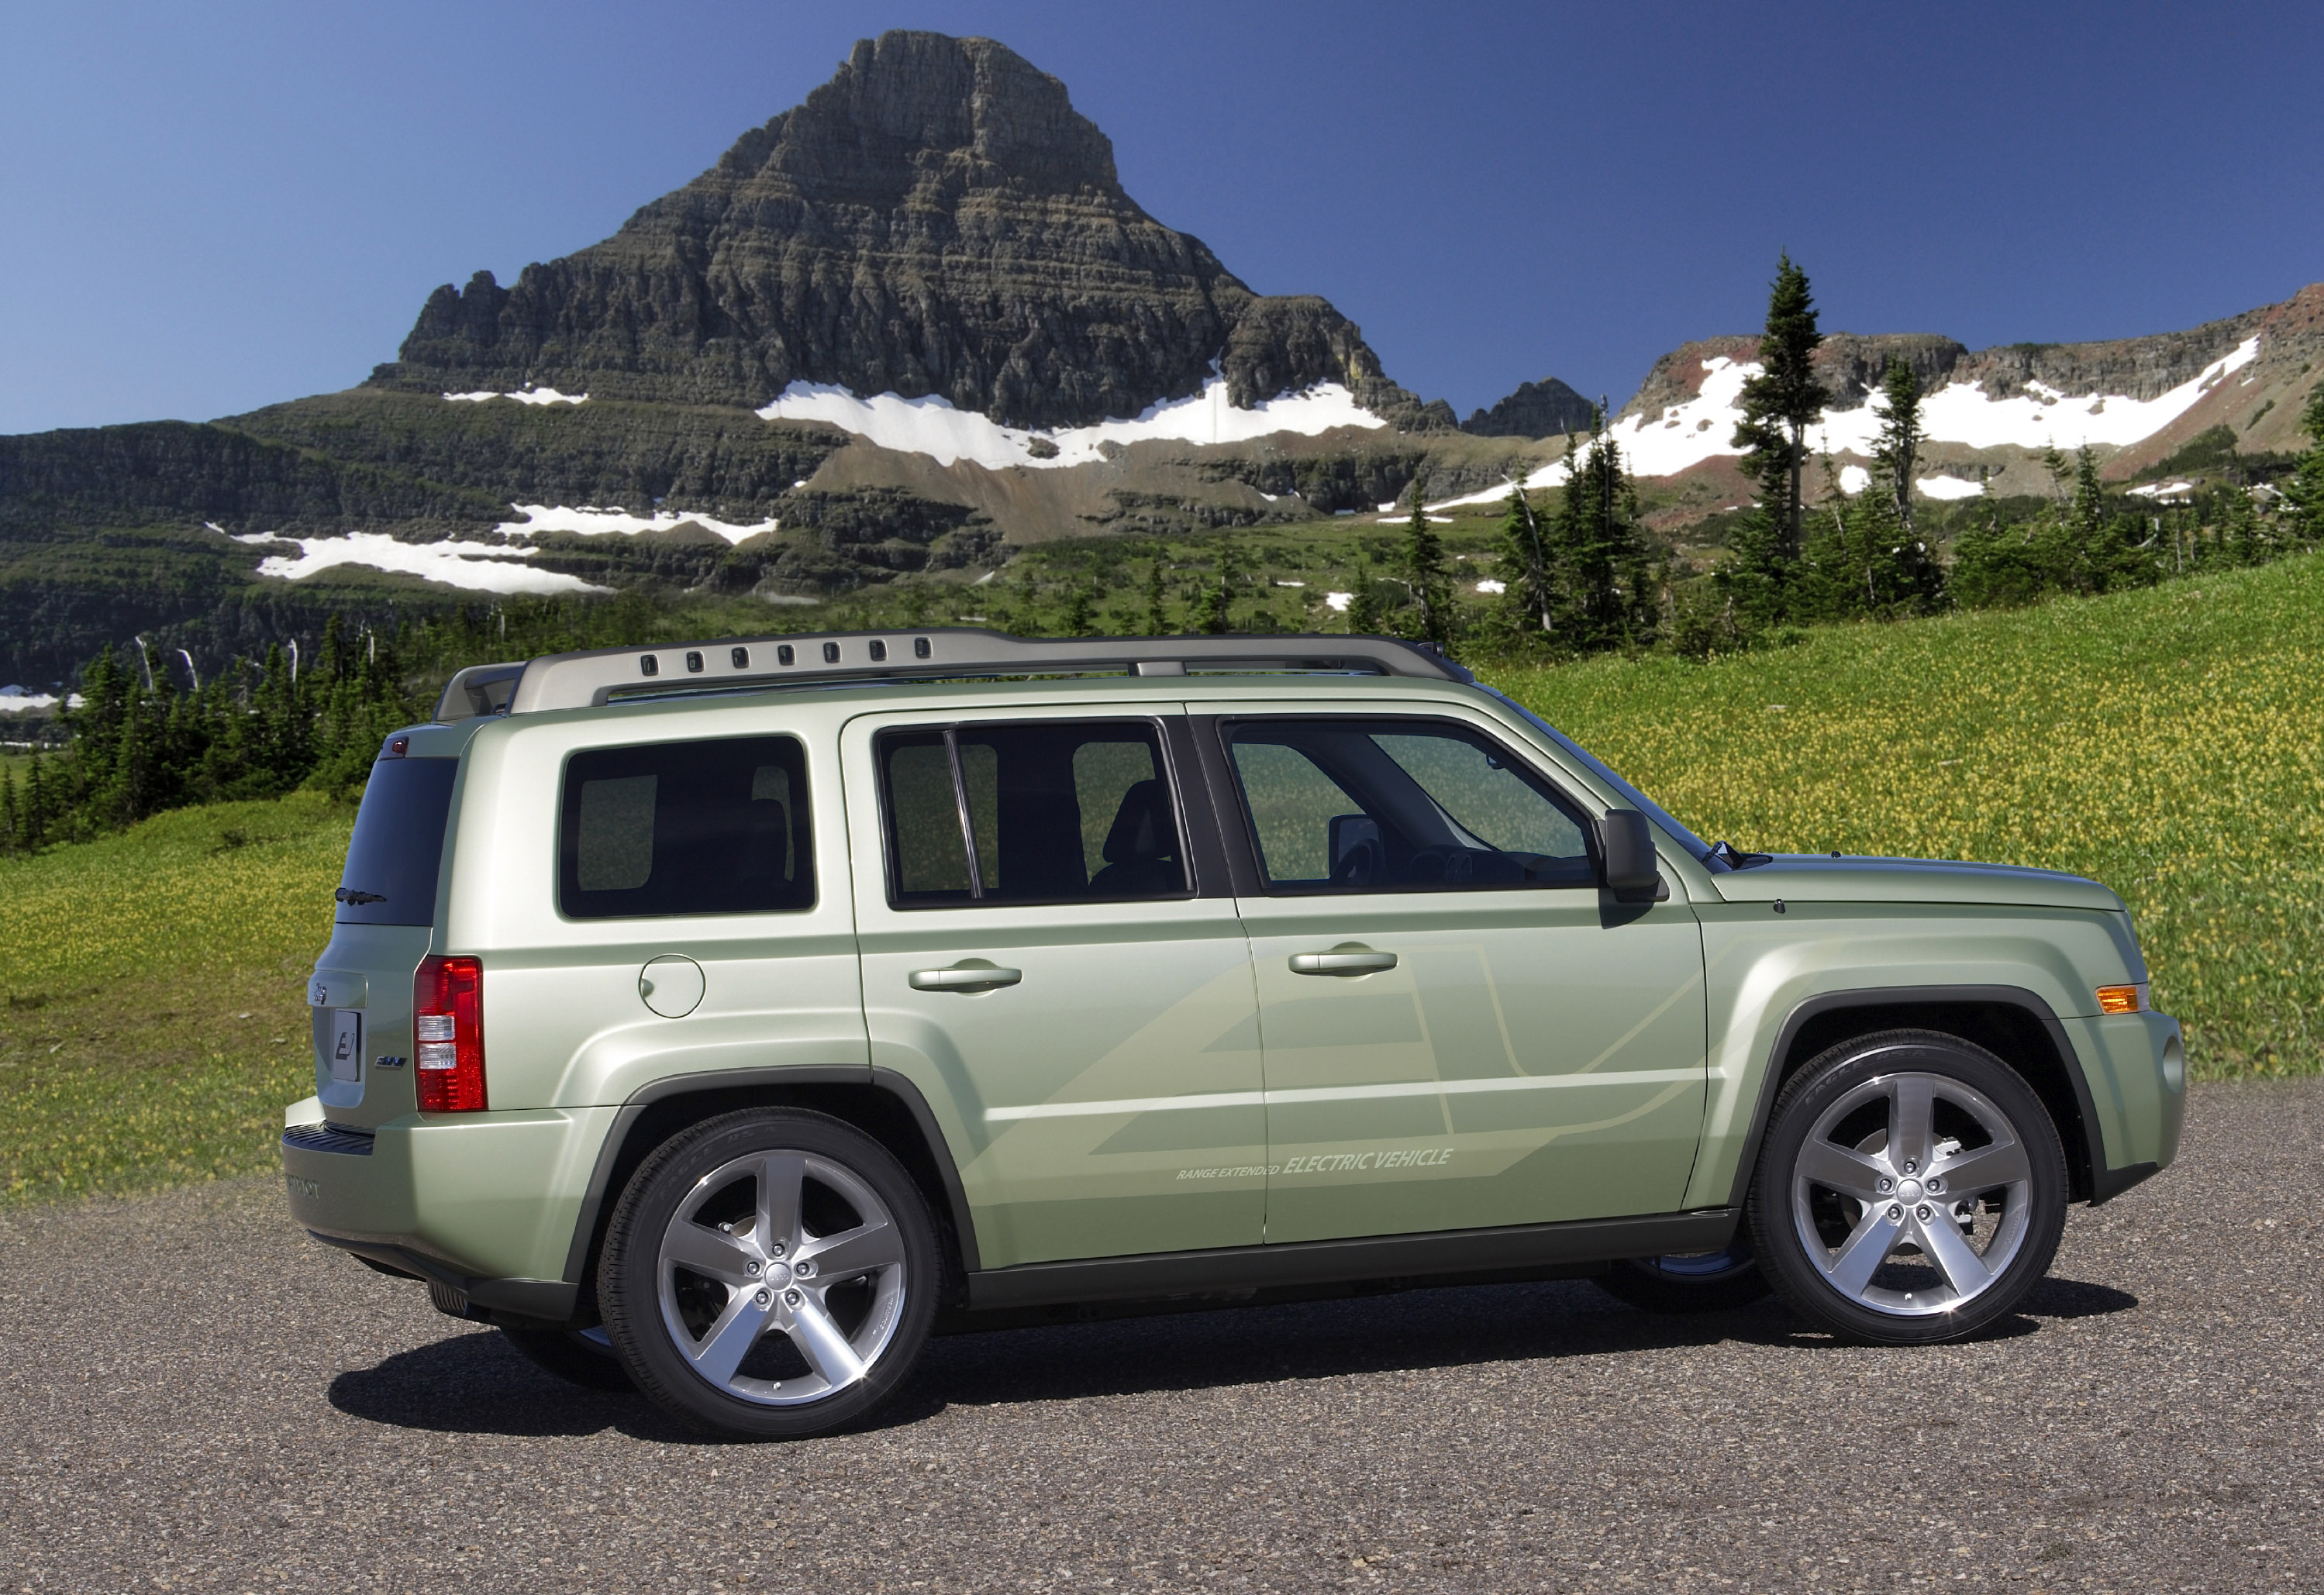 Chrysler Showcases Its Electric Vehicle Future At 2009